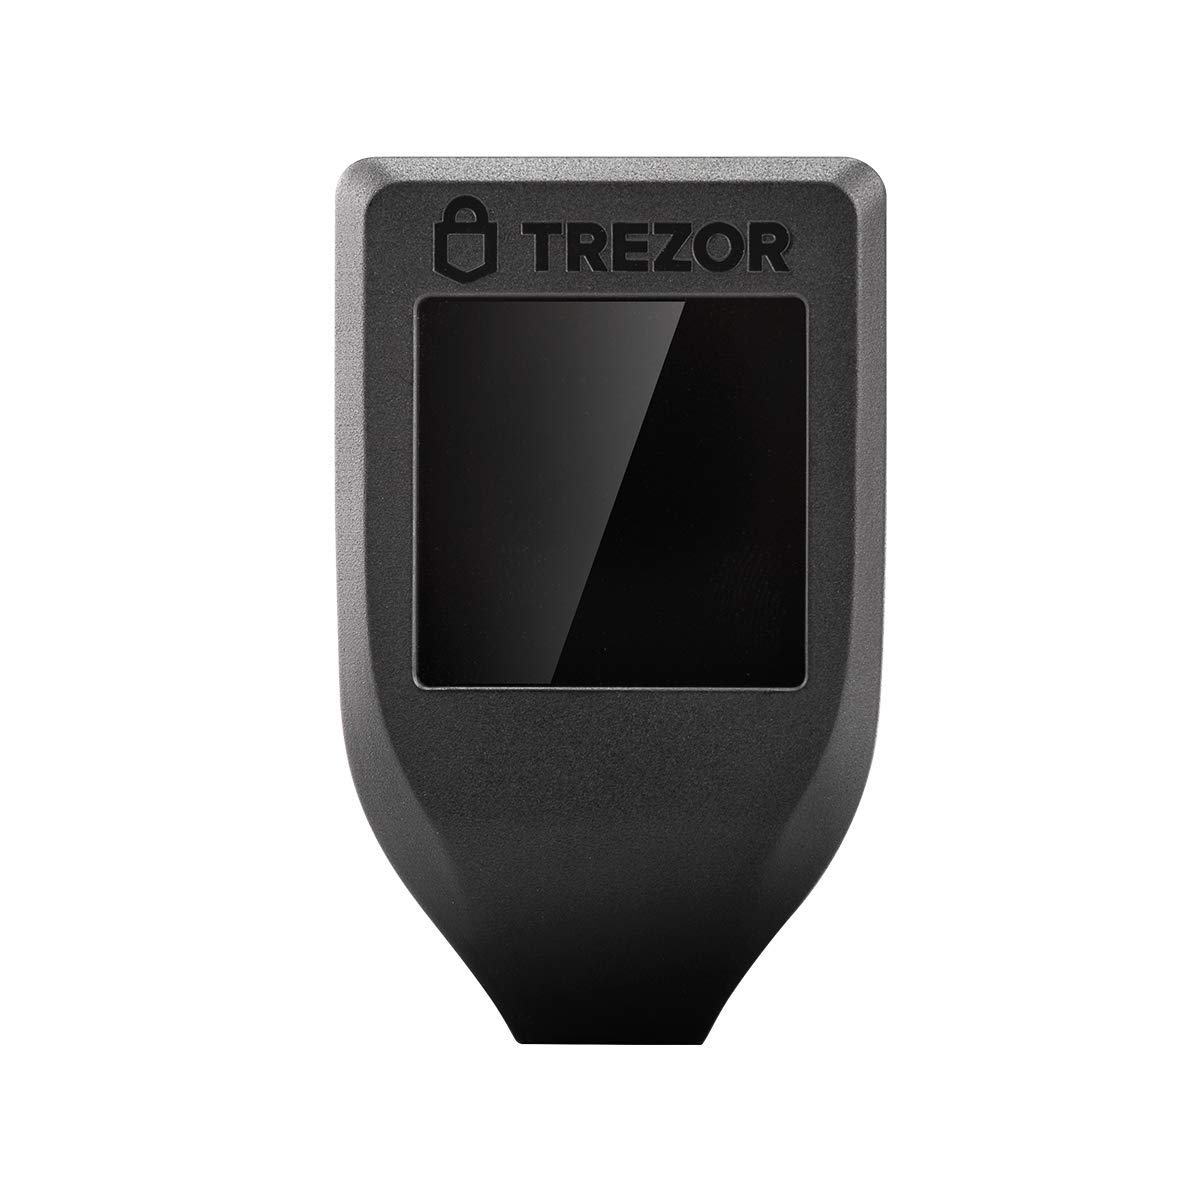 Trezor Model T - Cryptocurrency Hardware Wallet. Next Generation Universal Vault for Digital Assets. Store & Encrypt Cryptocurrencies, Passwords with Total Security by Trezor